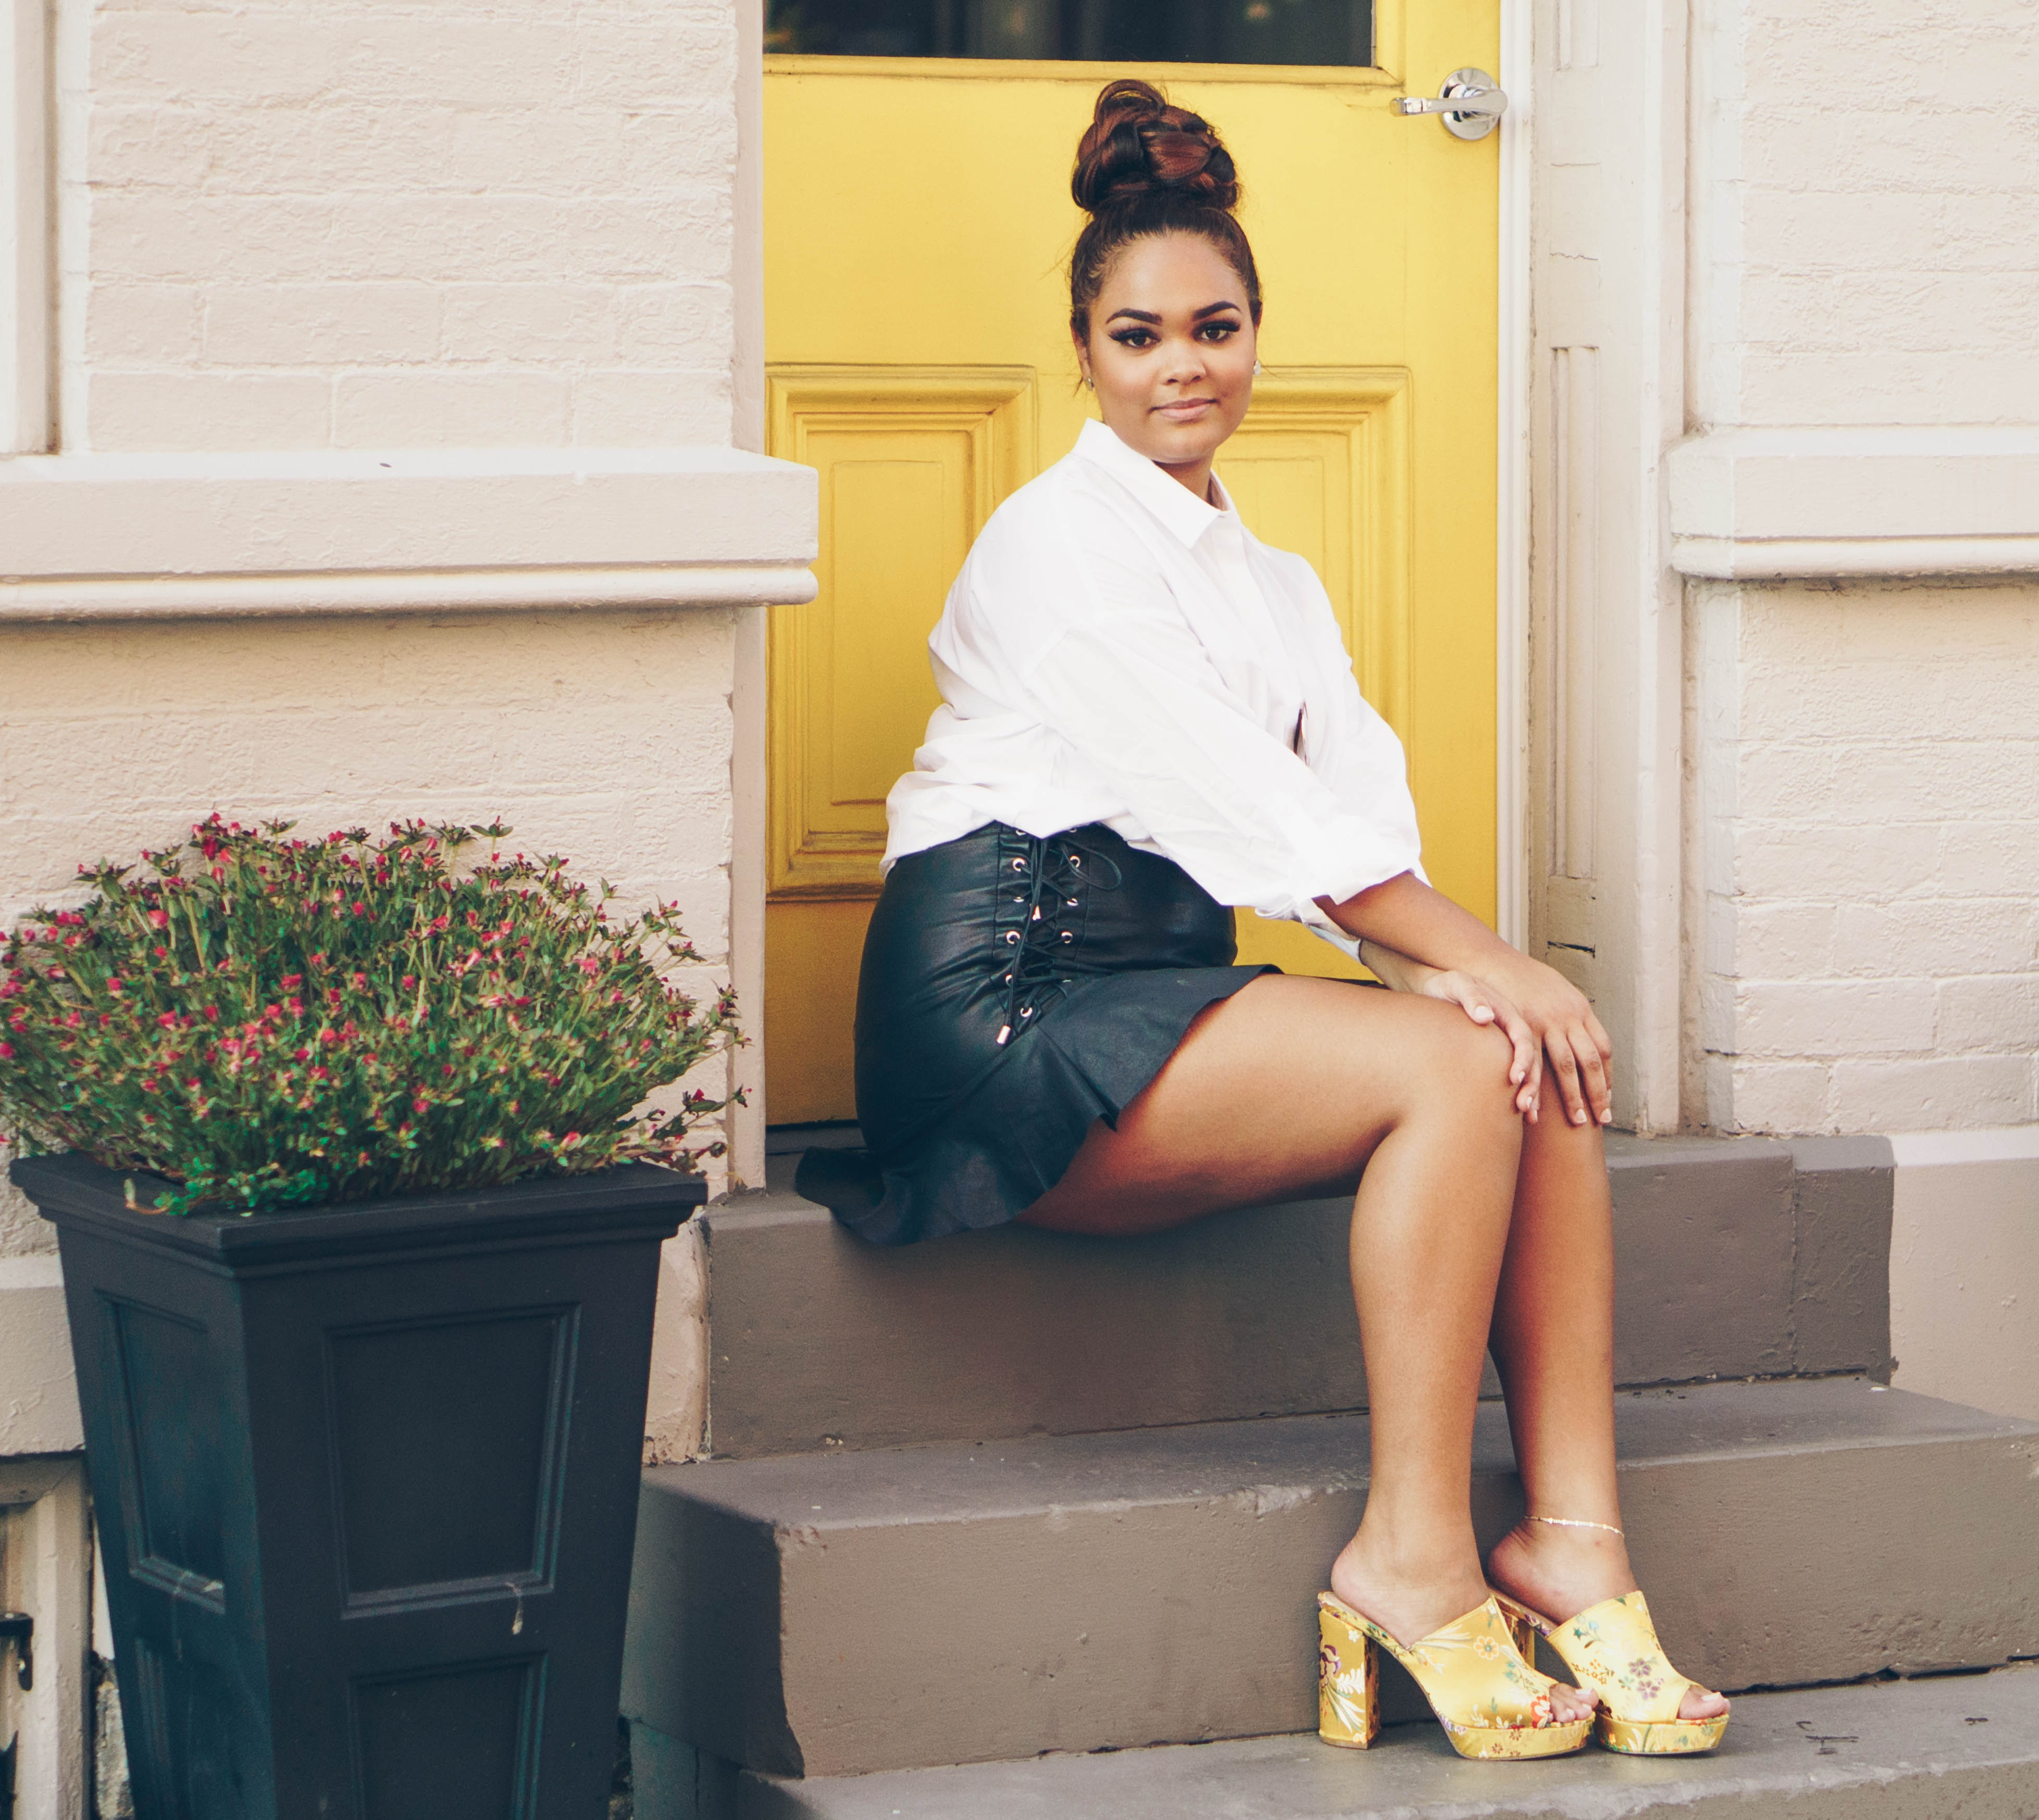 girl wearing a white shirt and black laced skirt sat on steps in front of a yellow door